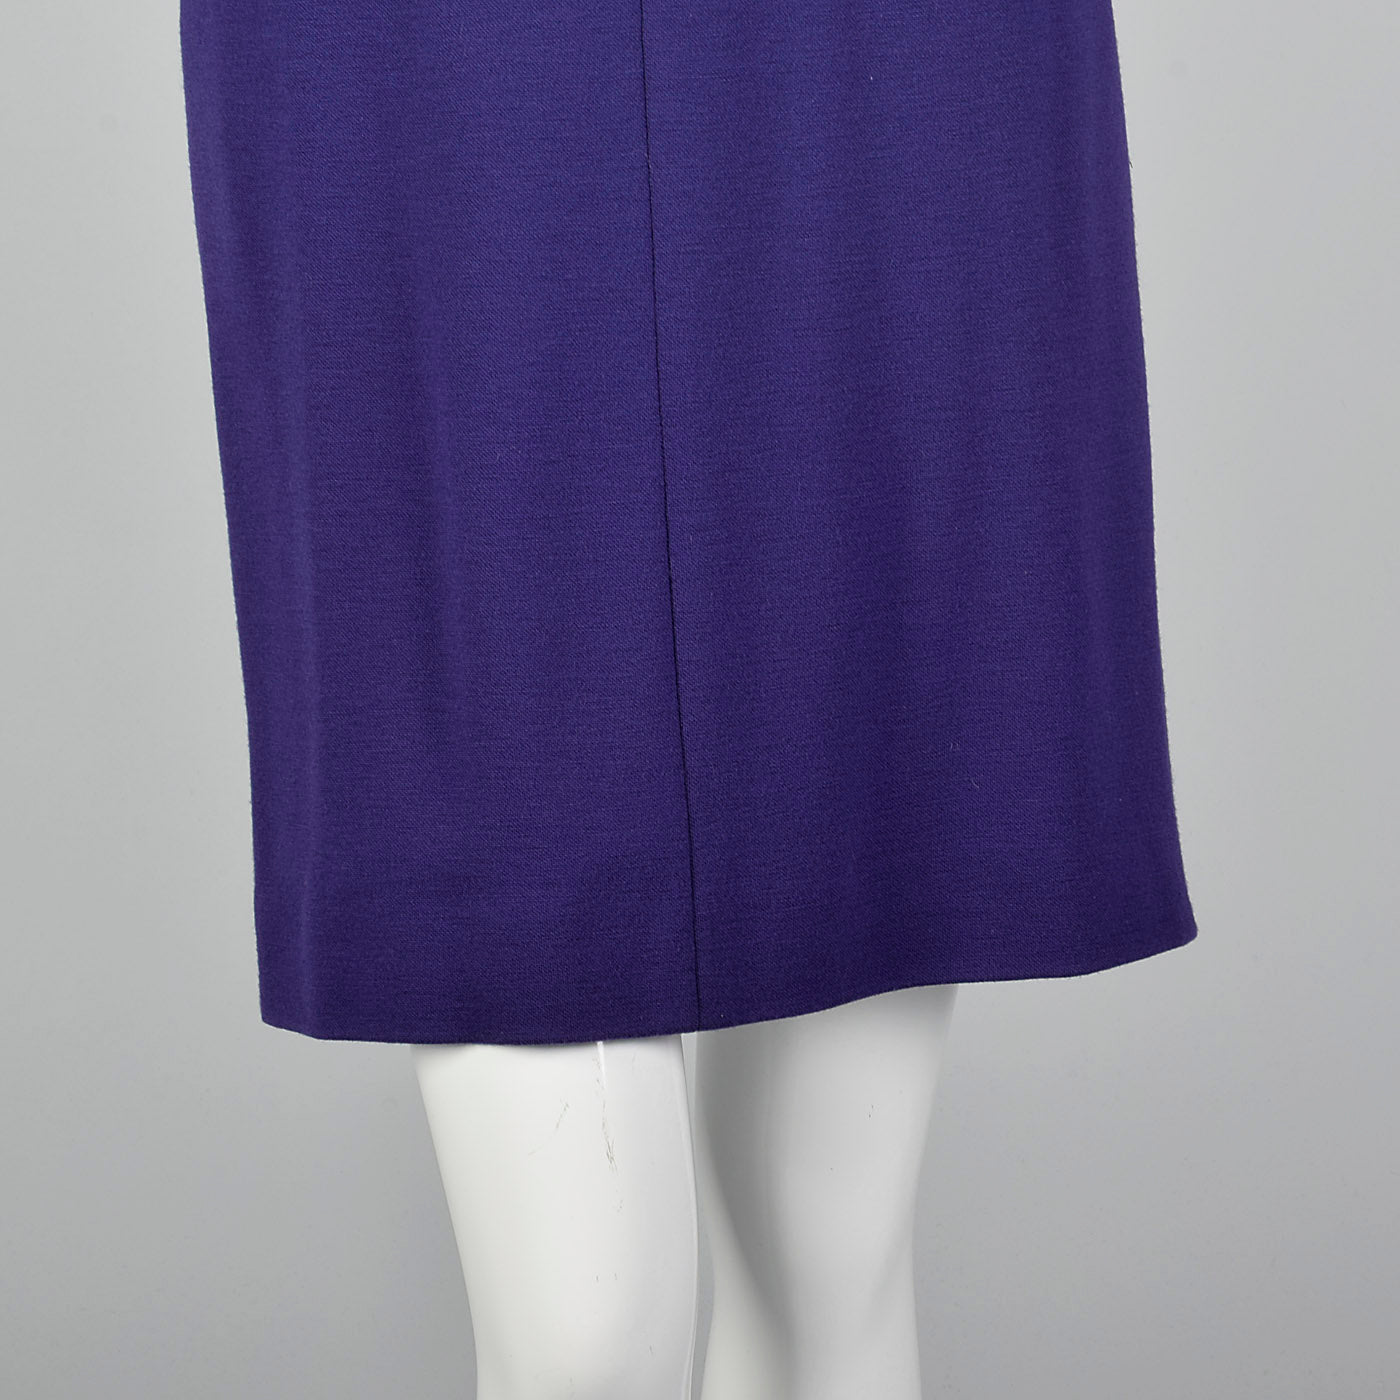 1980s Geoffrey Beene Purple Knit Dress